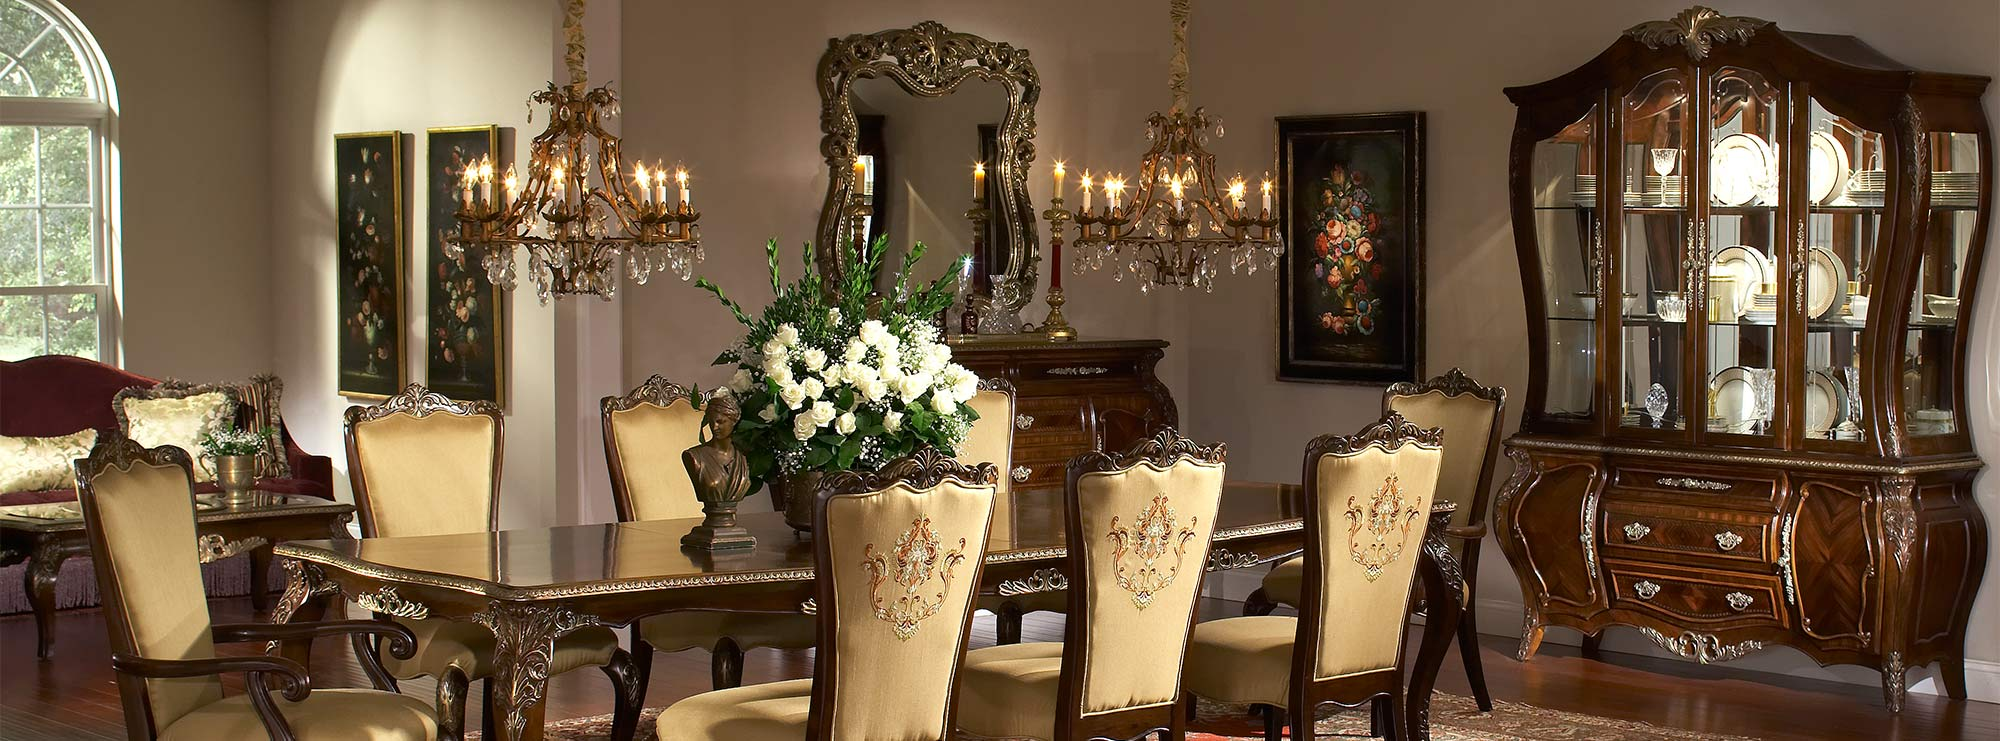 Imperial Court dining room suite